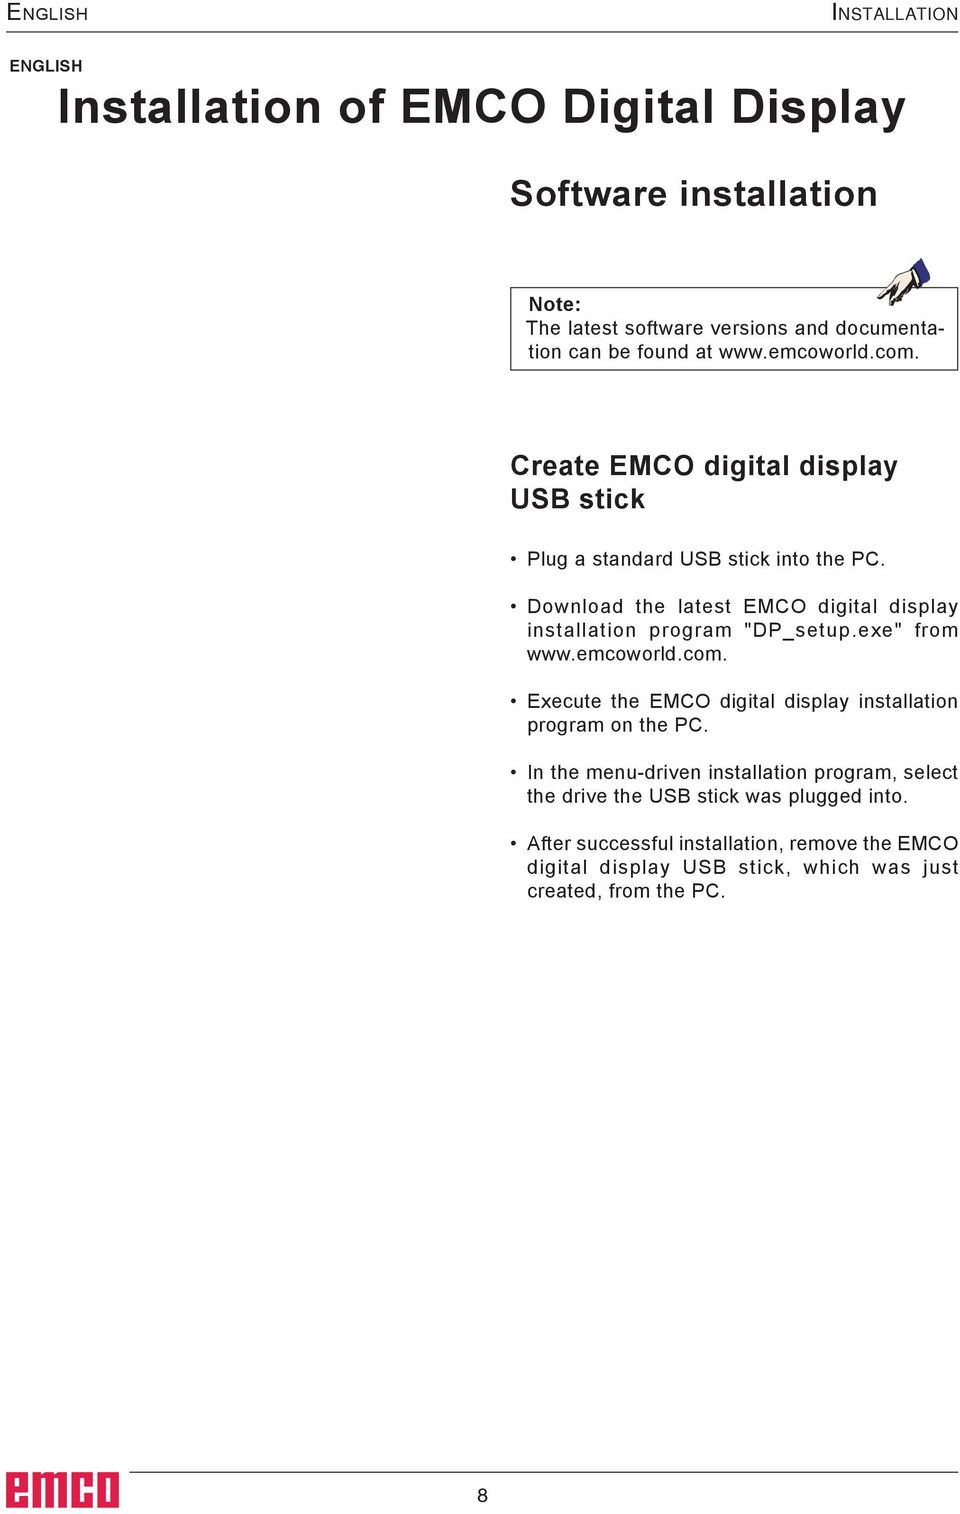 "Download the latest EMCO digital display installation program ""DP_setup.exe"" from www.emcoworld.com."